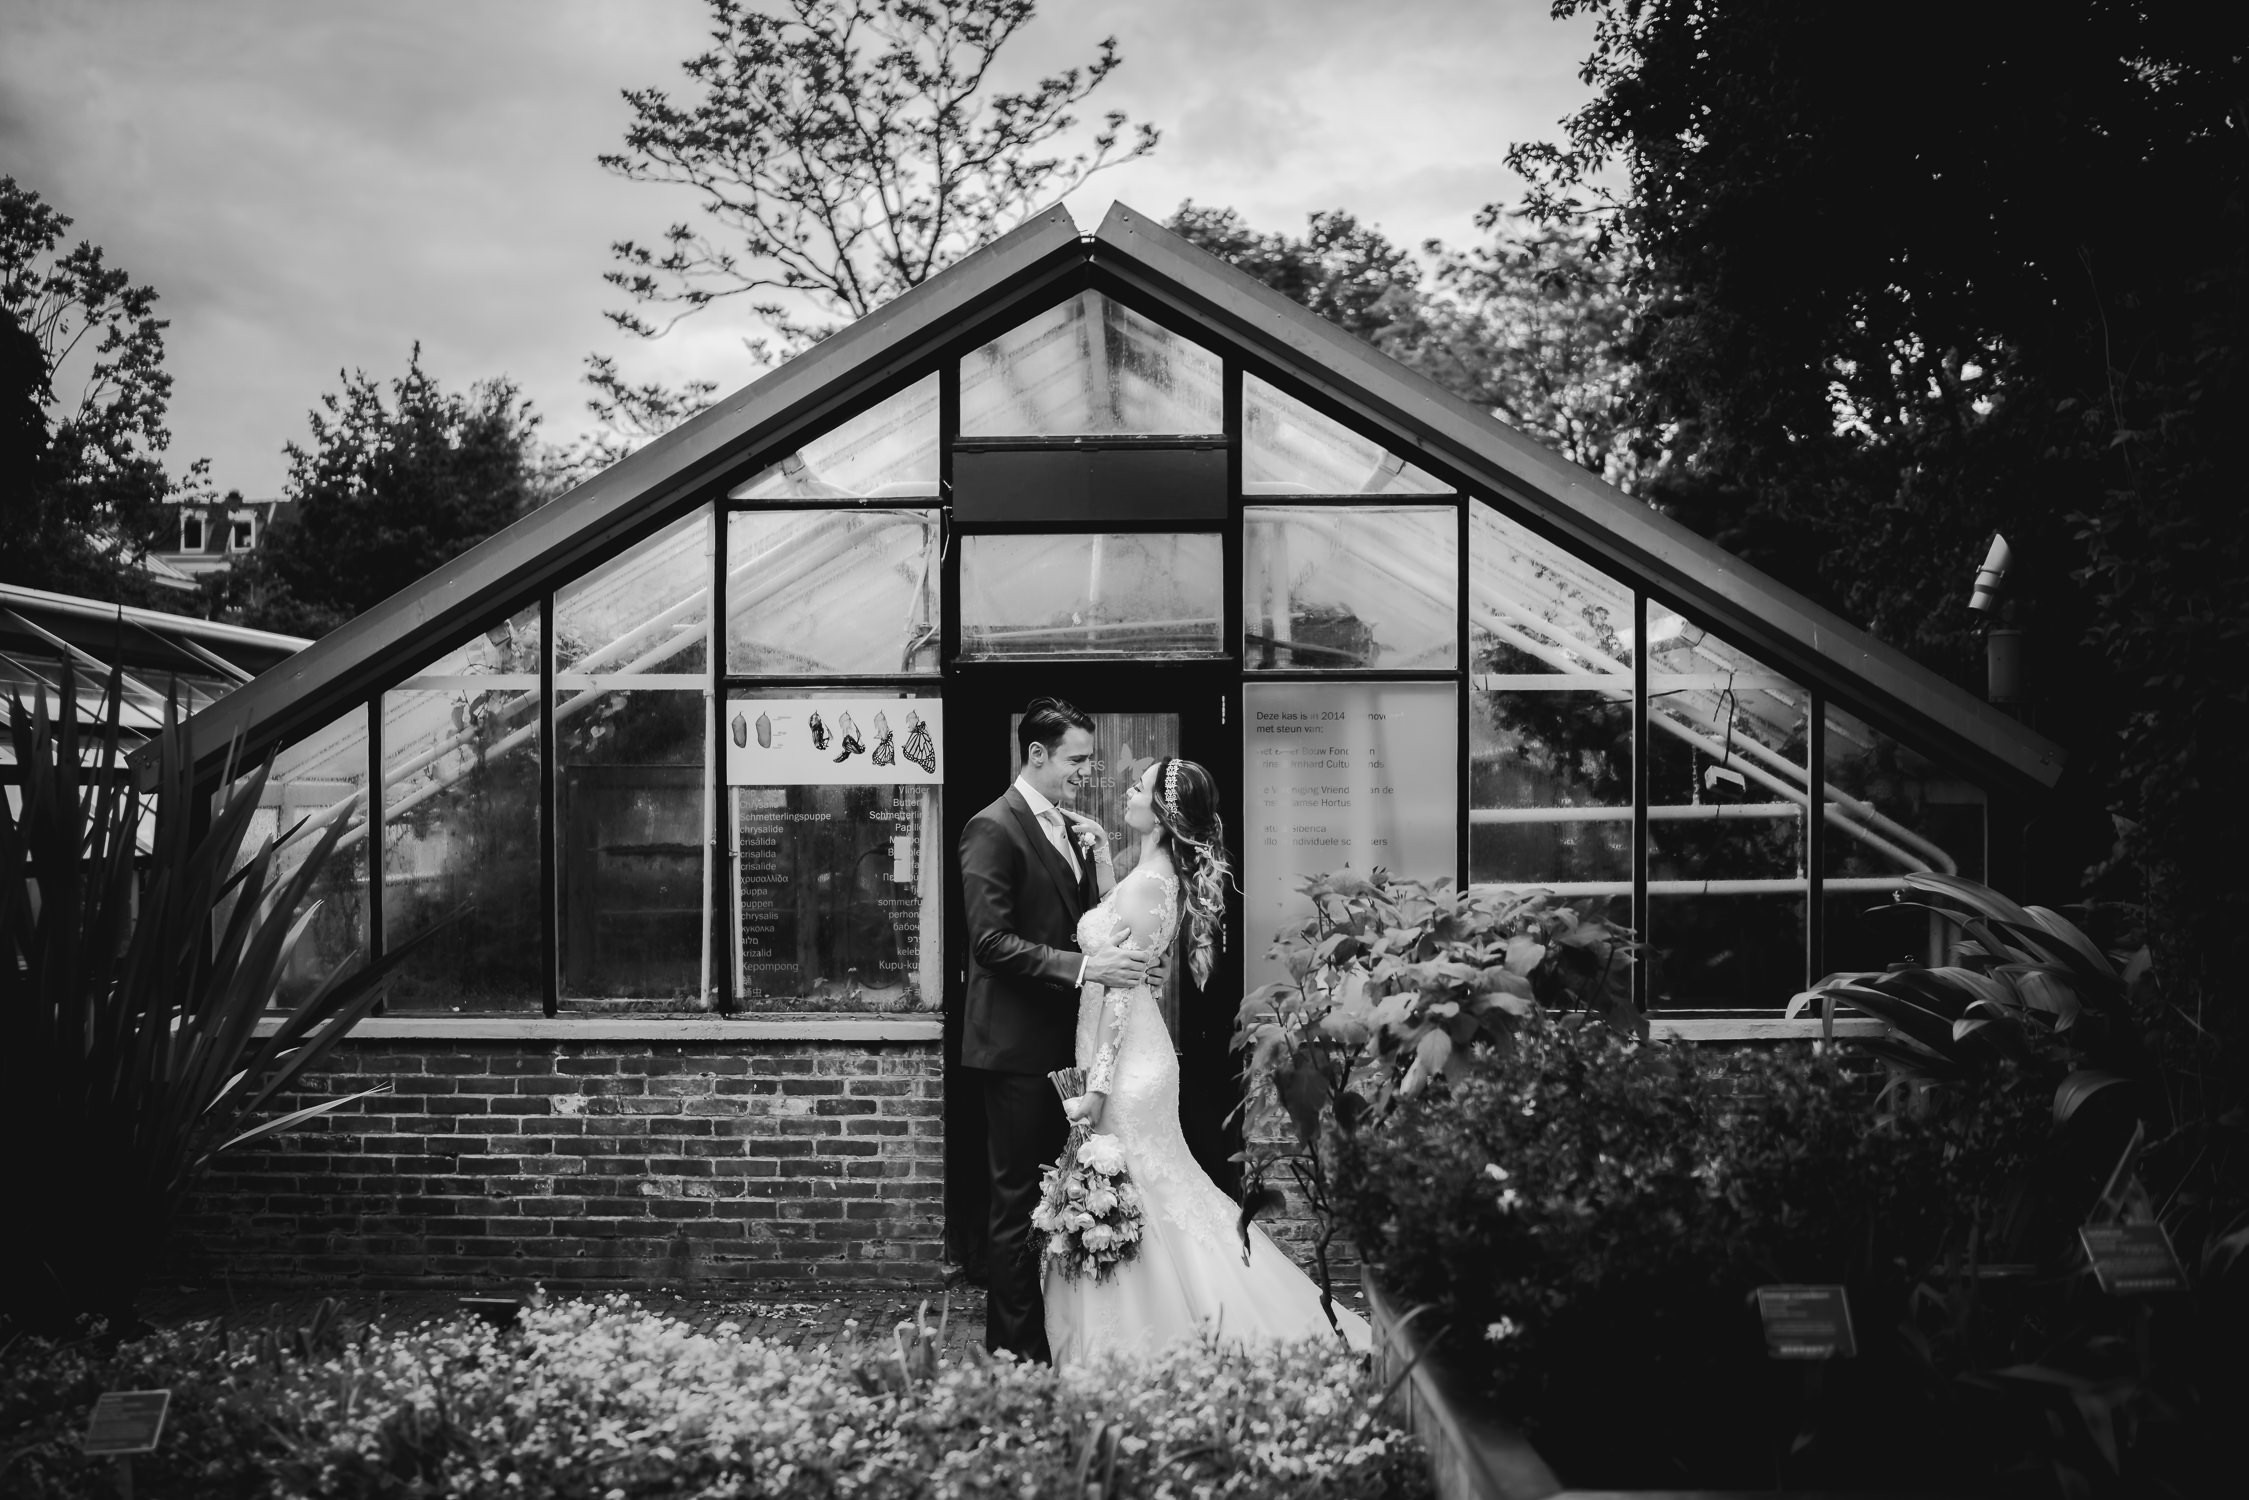 Best wedding photographer Netherlands, Amsterdam, Utrecht, Den Haag